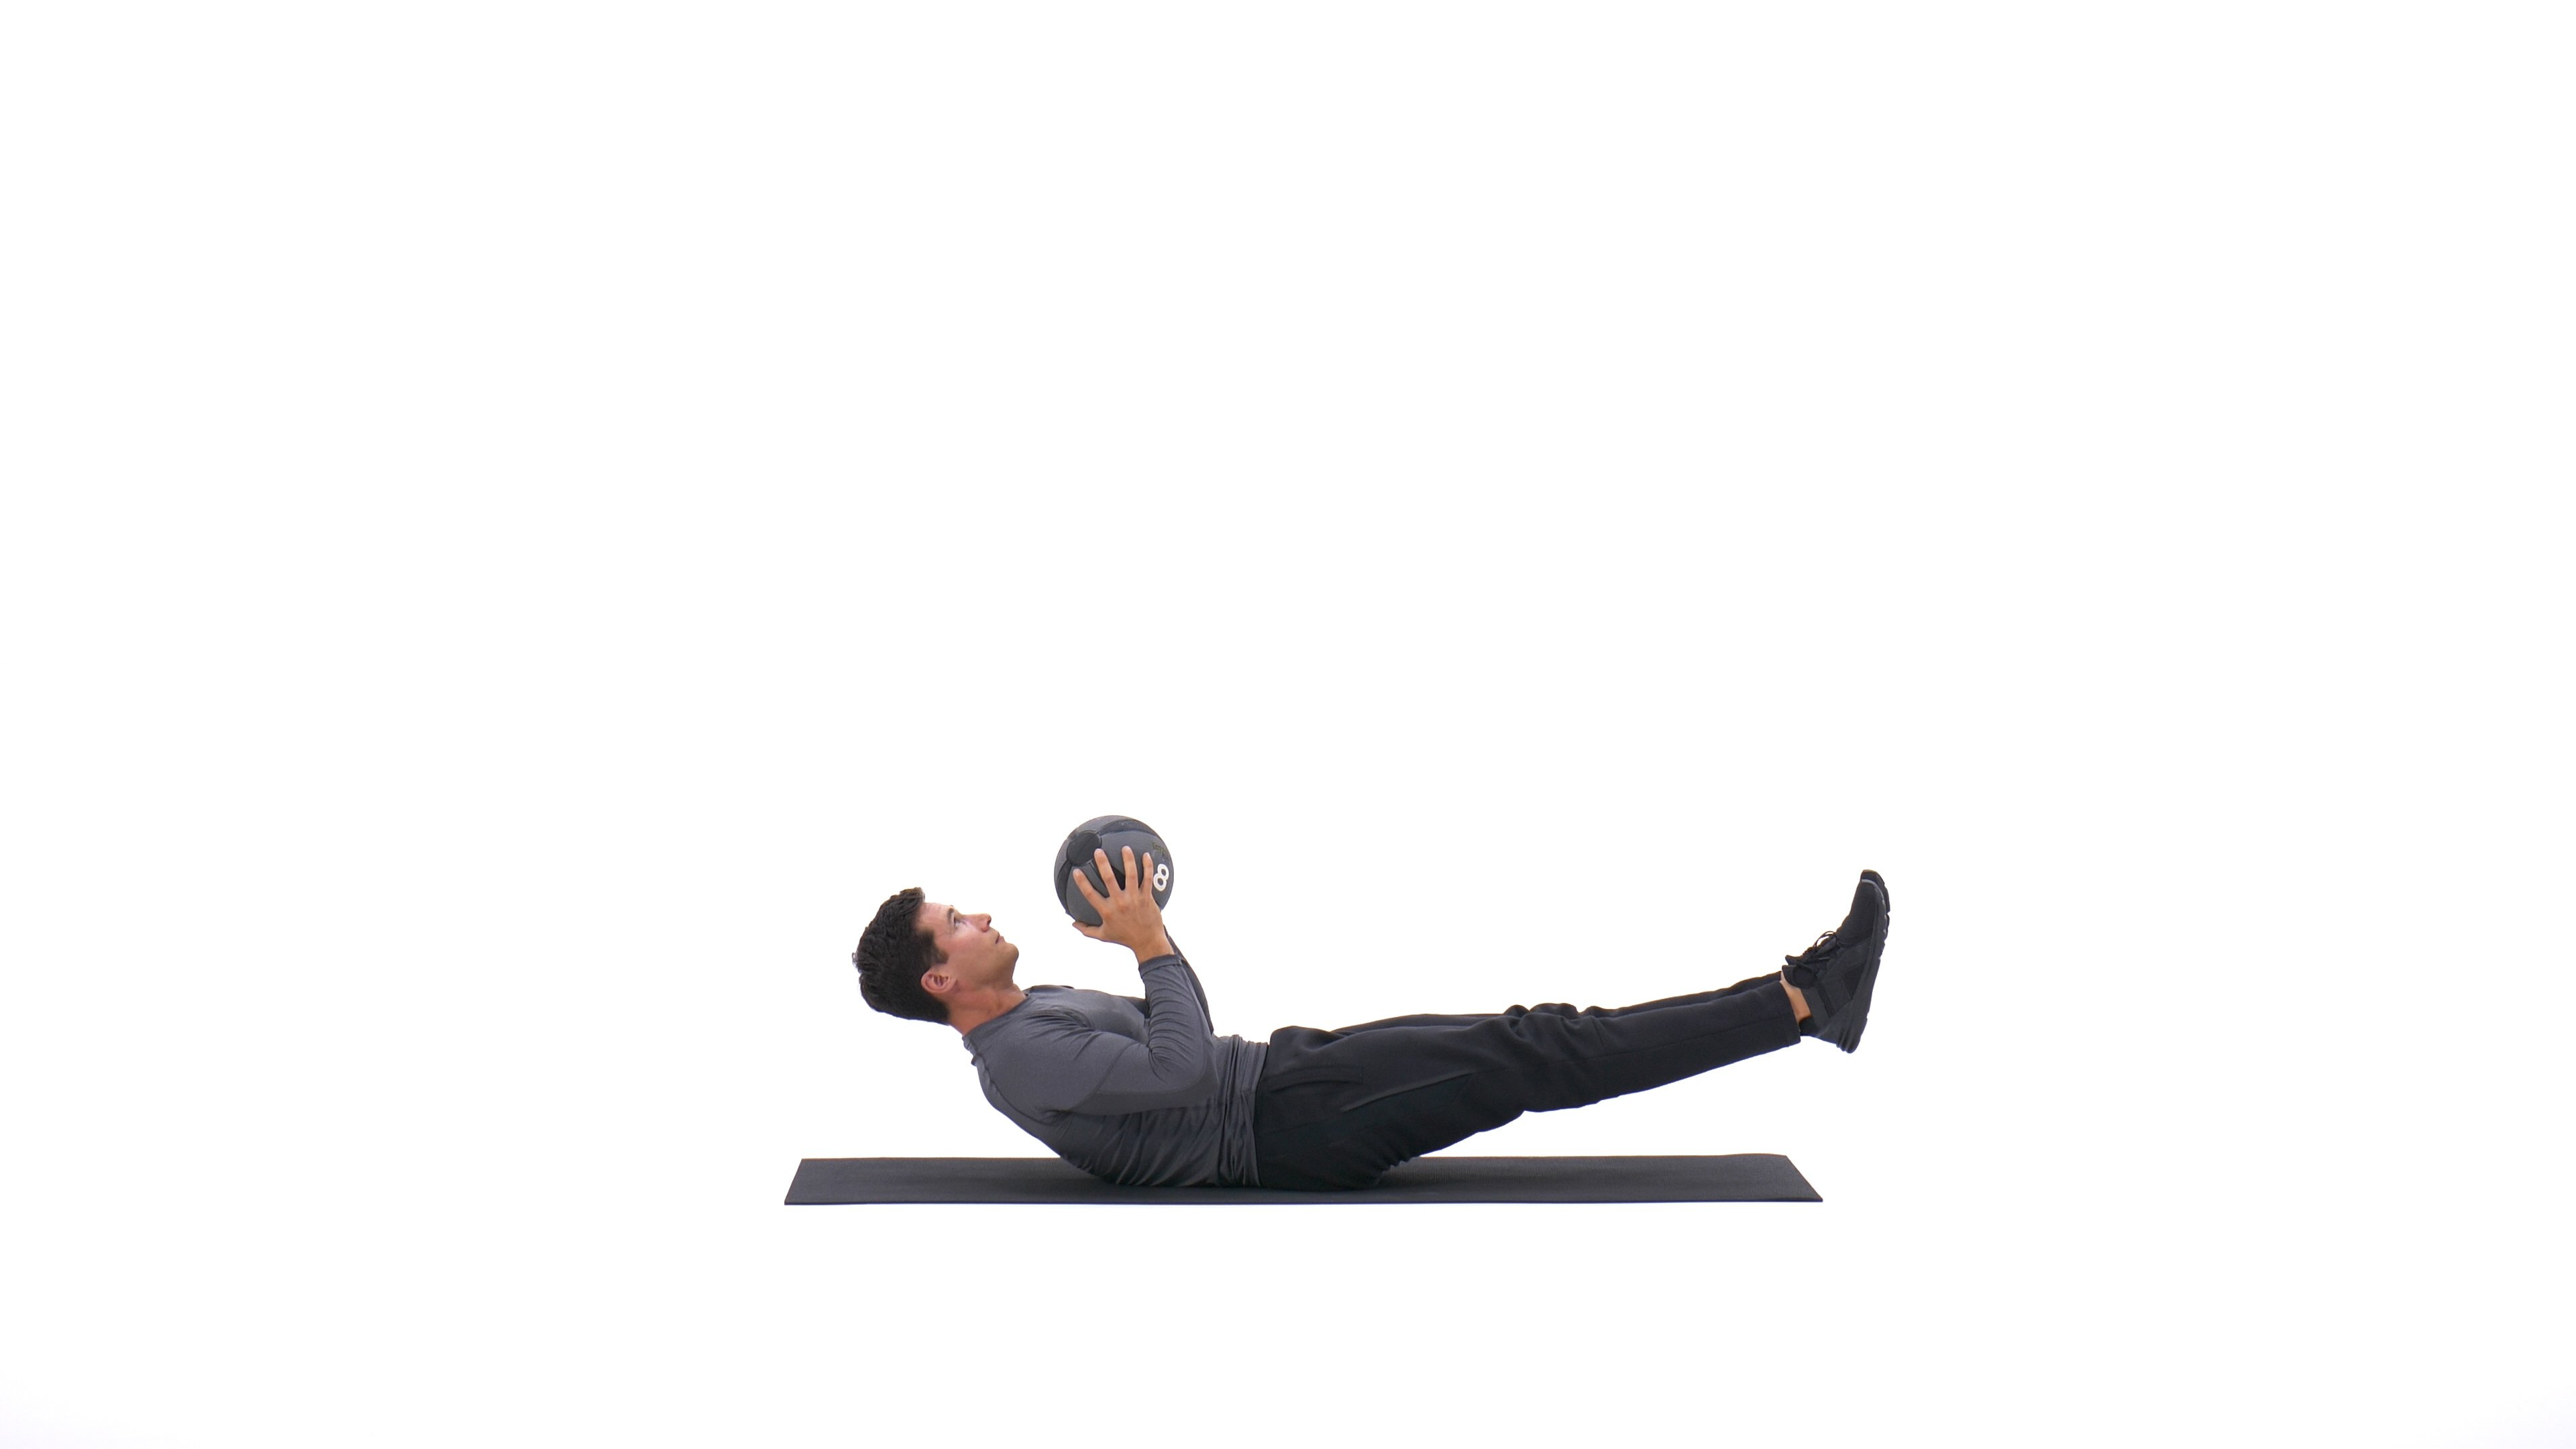 V-Sit Lying Down Ball Throw And Catch image